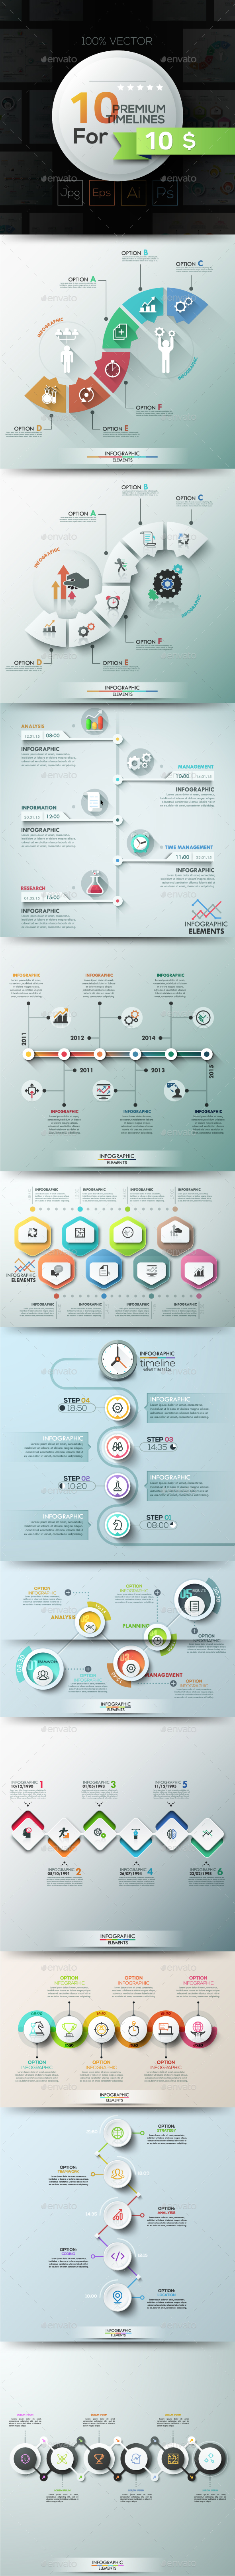 GraphicRiver 10 Infographic Timelines Part 2 20540228